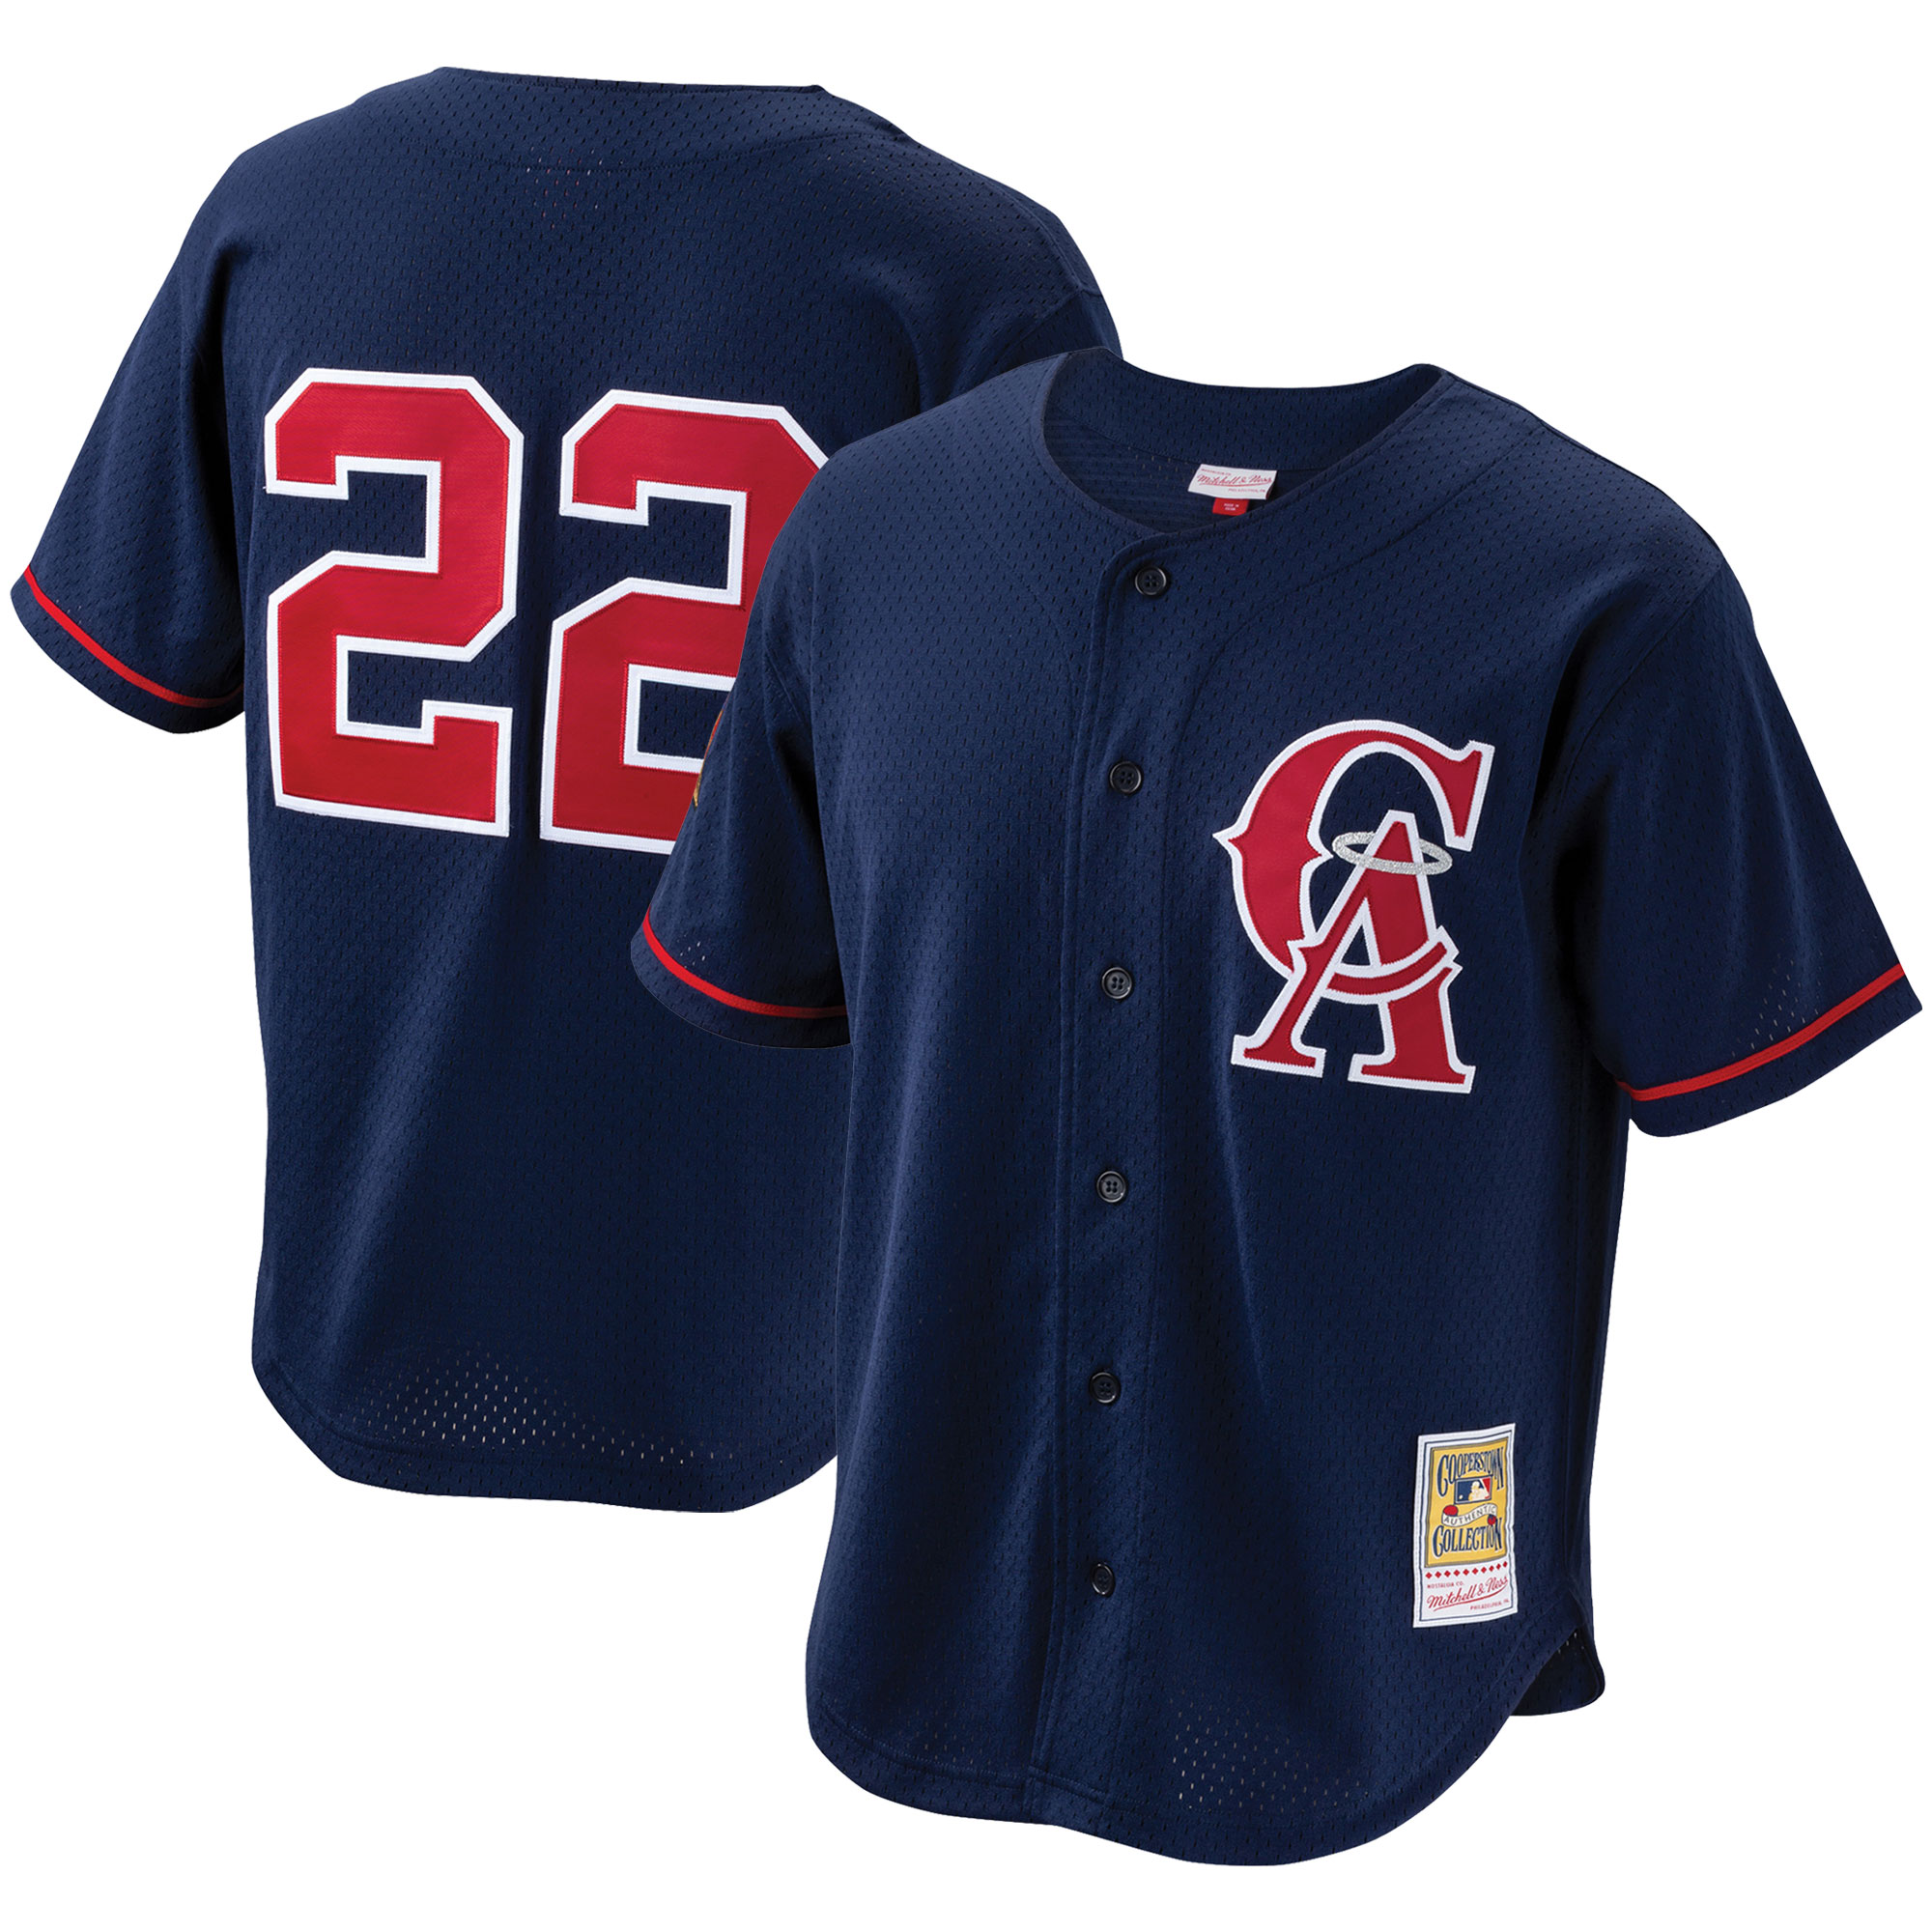 Bo Jackson California Angels Mitchell & Ness Cooperstown Collection Mesh Batting Practice Button-Up Jersey - Navy